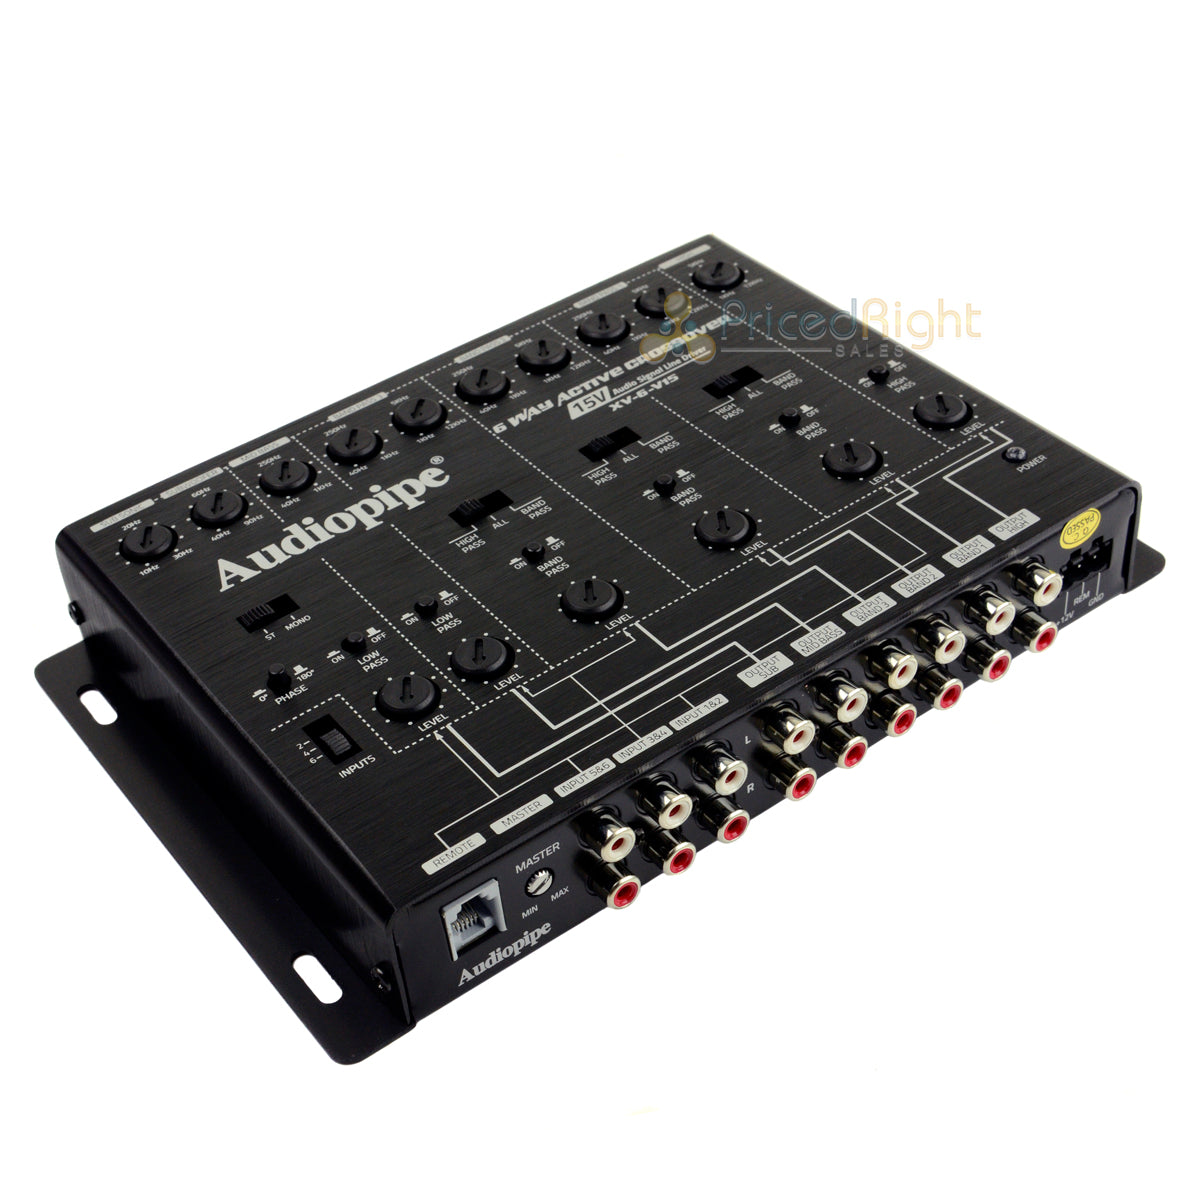 6 Way Active Crossover 15V Audio Signal Line Driver Bass Control Audiopipe